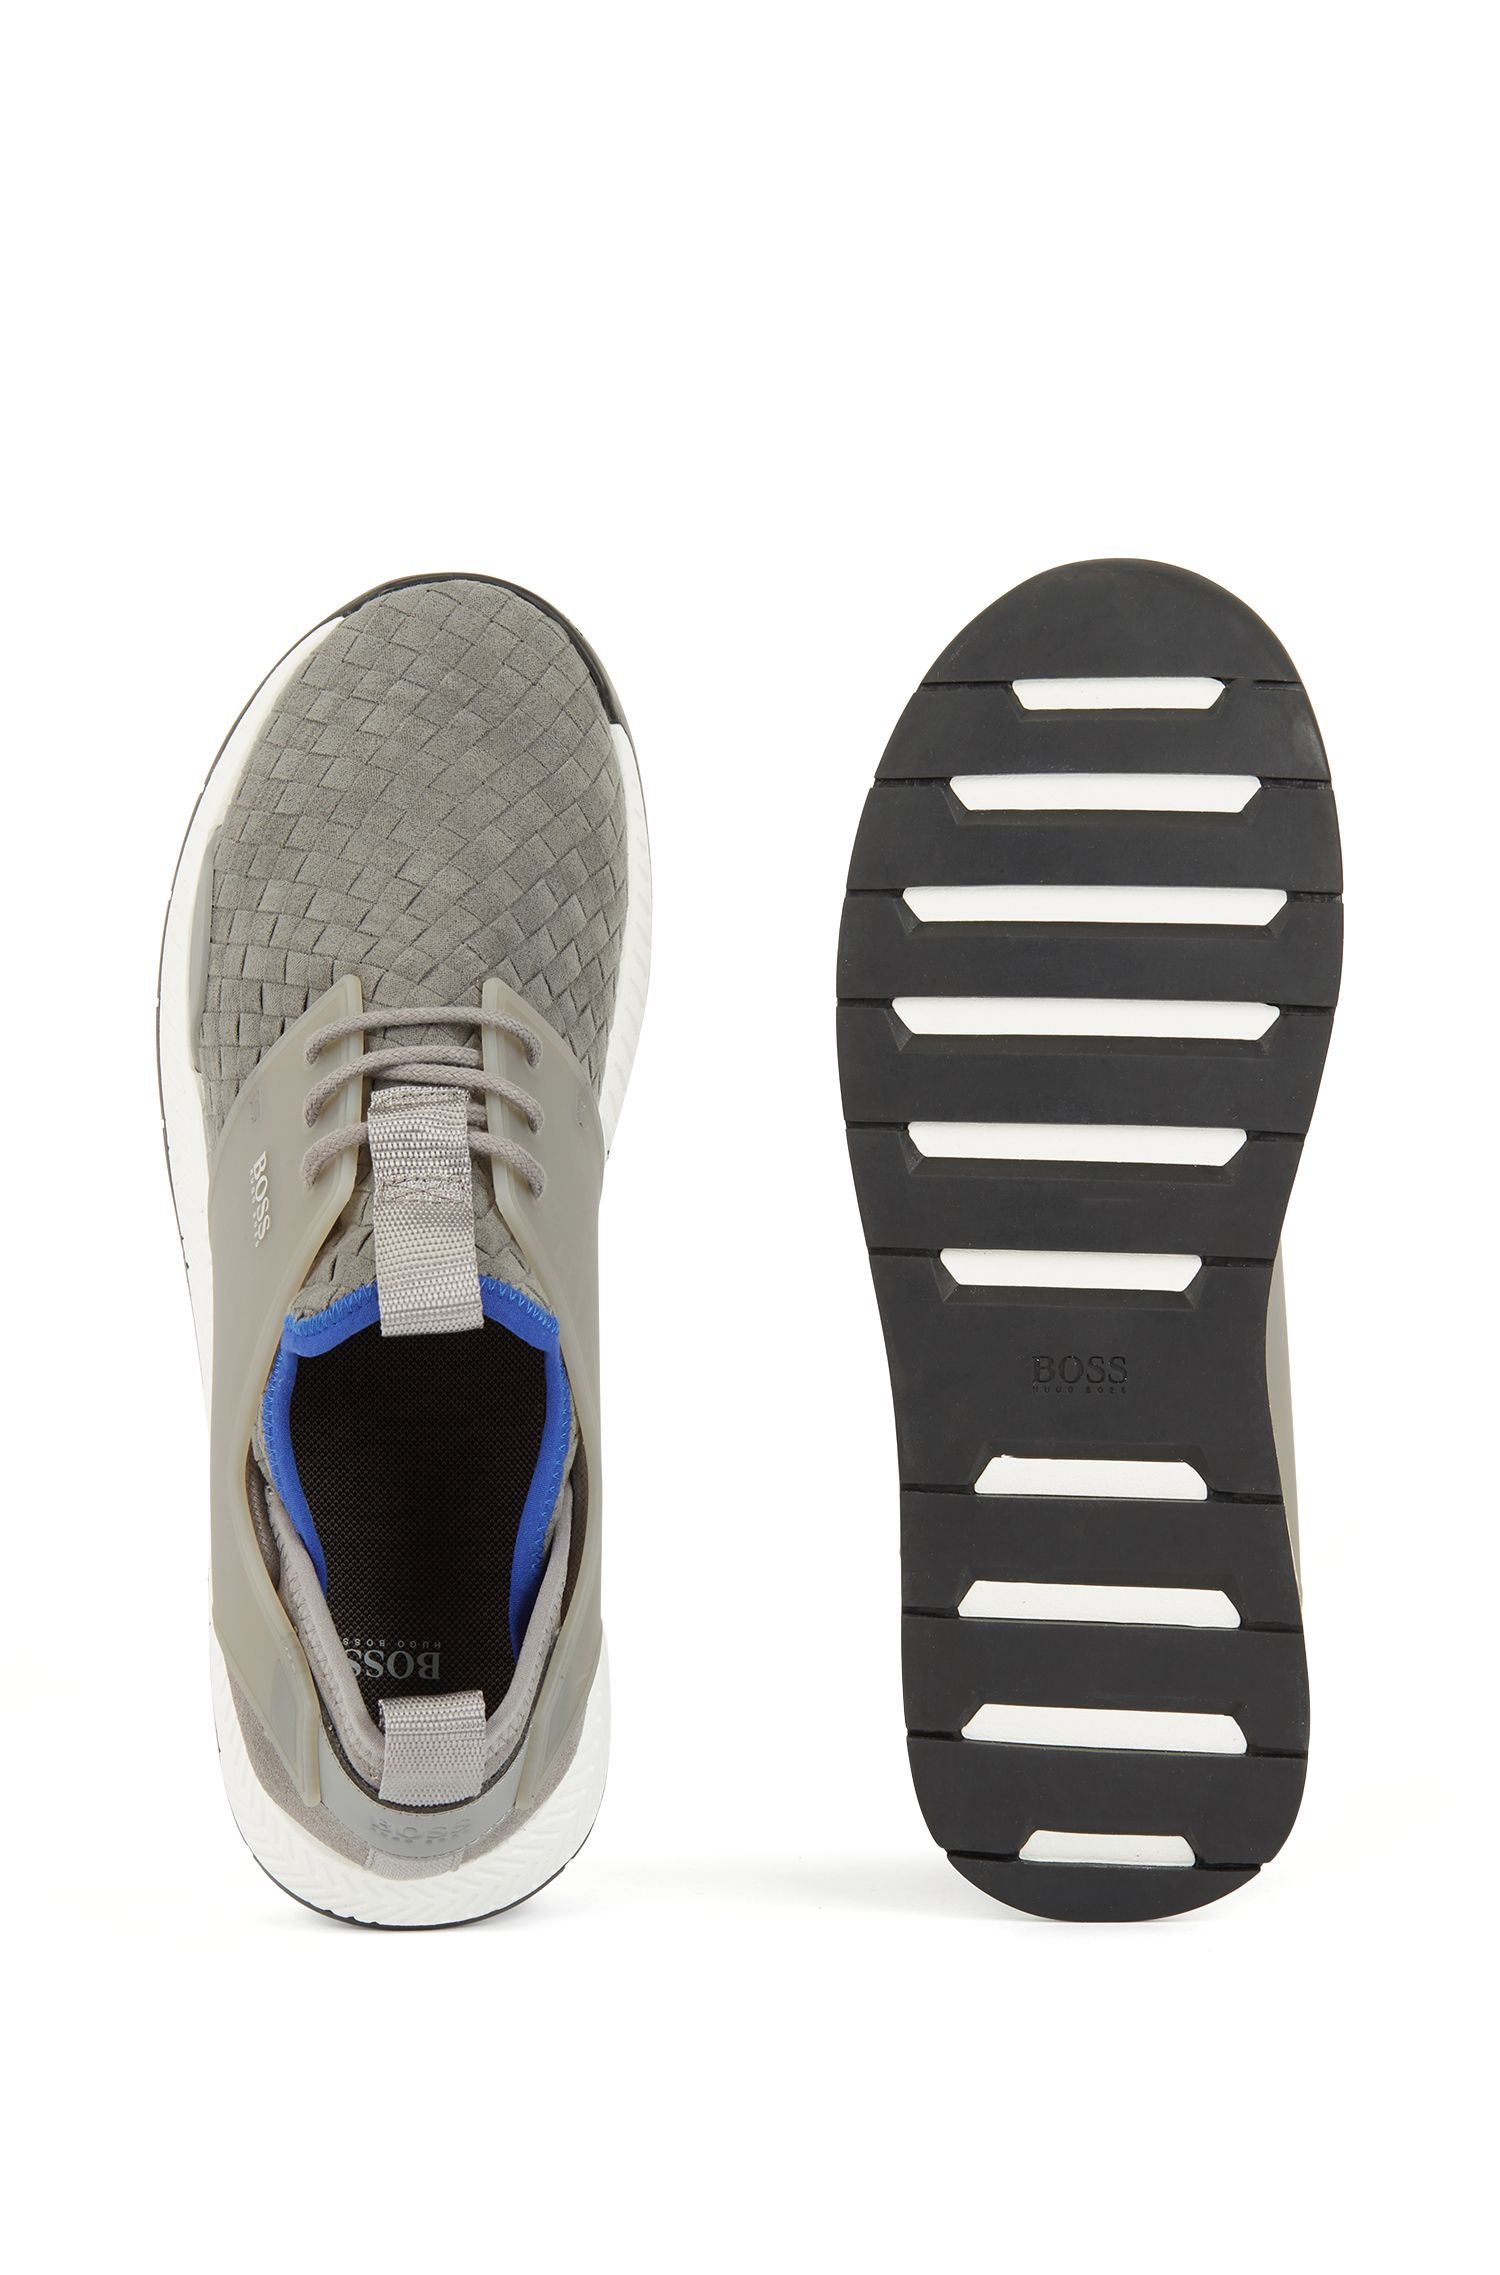 Running-style hybrid sneakers with EVA and rubber sole, Grey